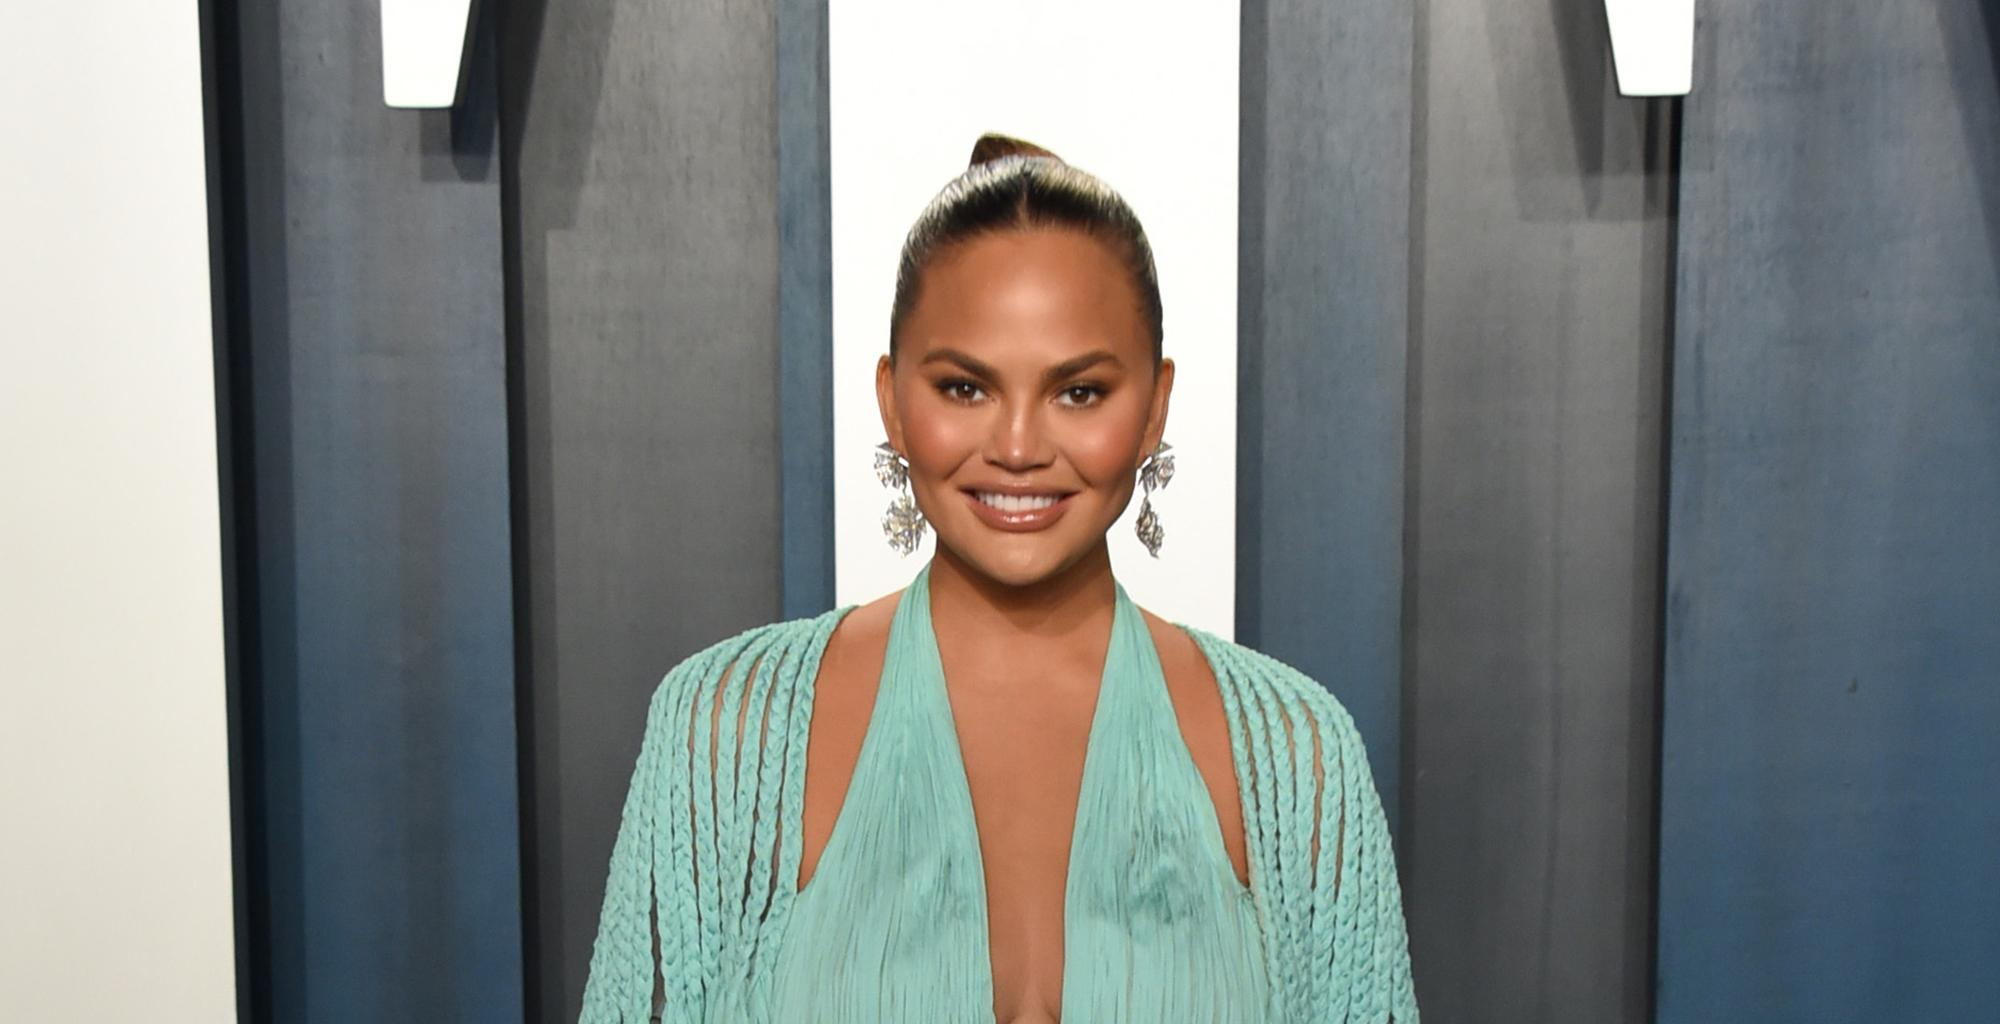 Chrissy Teigen Body-Shamed After Sharing Thirst Trap Vid Of Her In A Plunging Bathing Suit - She Claps Back!